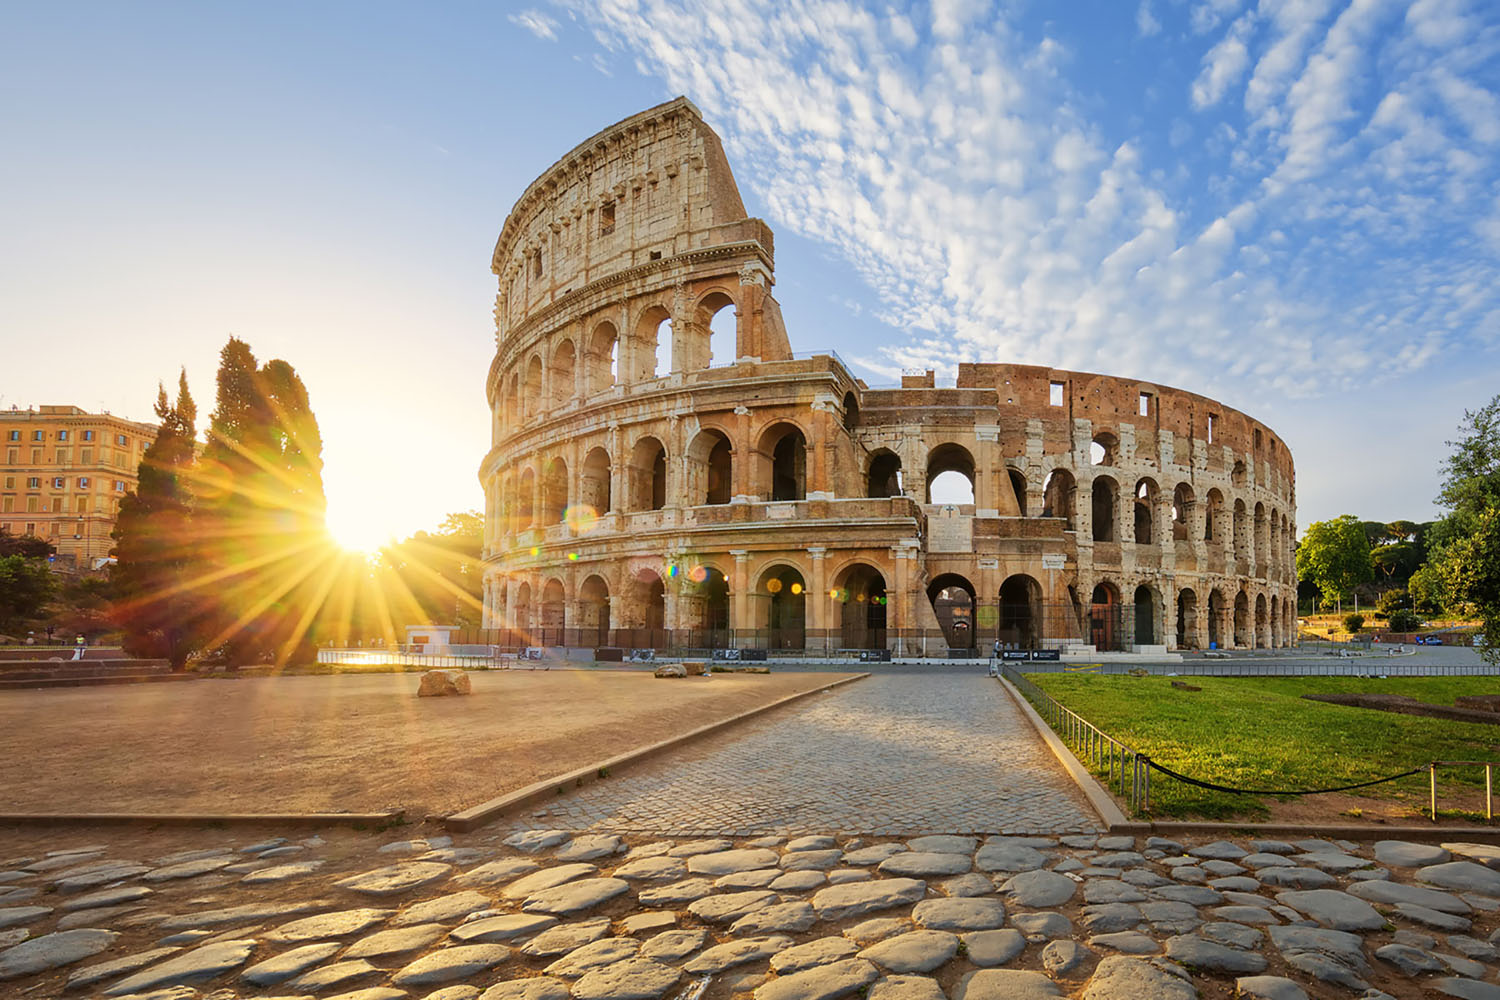 The Colosseum in Rome in the early morning sun